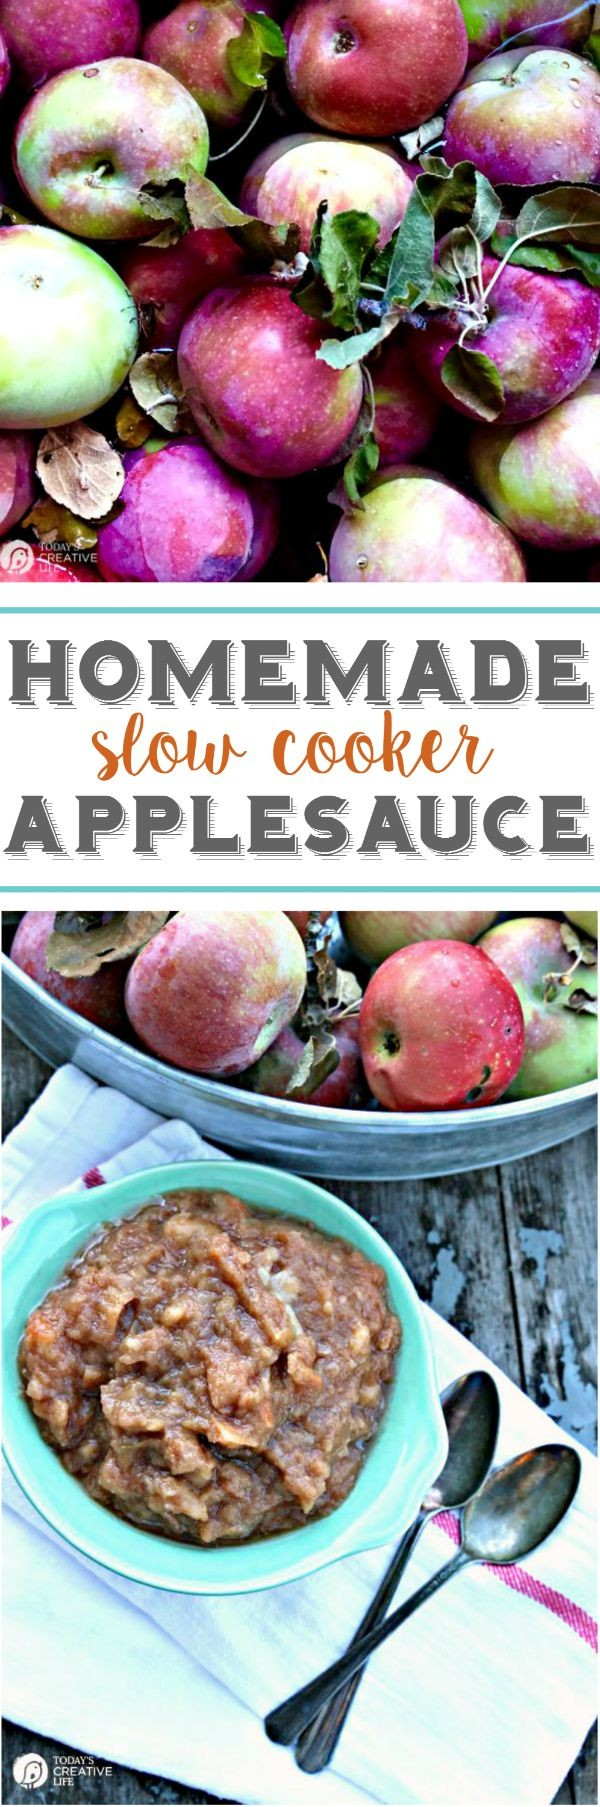 Homemade Slow Cooker Applesauce | Sweet, tangy and delicious! So easy to make using your crockpot! See more Slow Cooker Sunday Recipes on TodaysCreativeLife.com